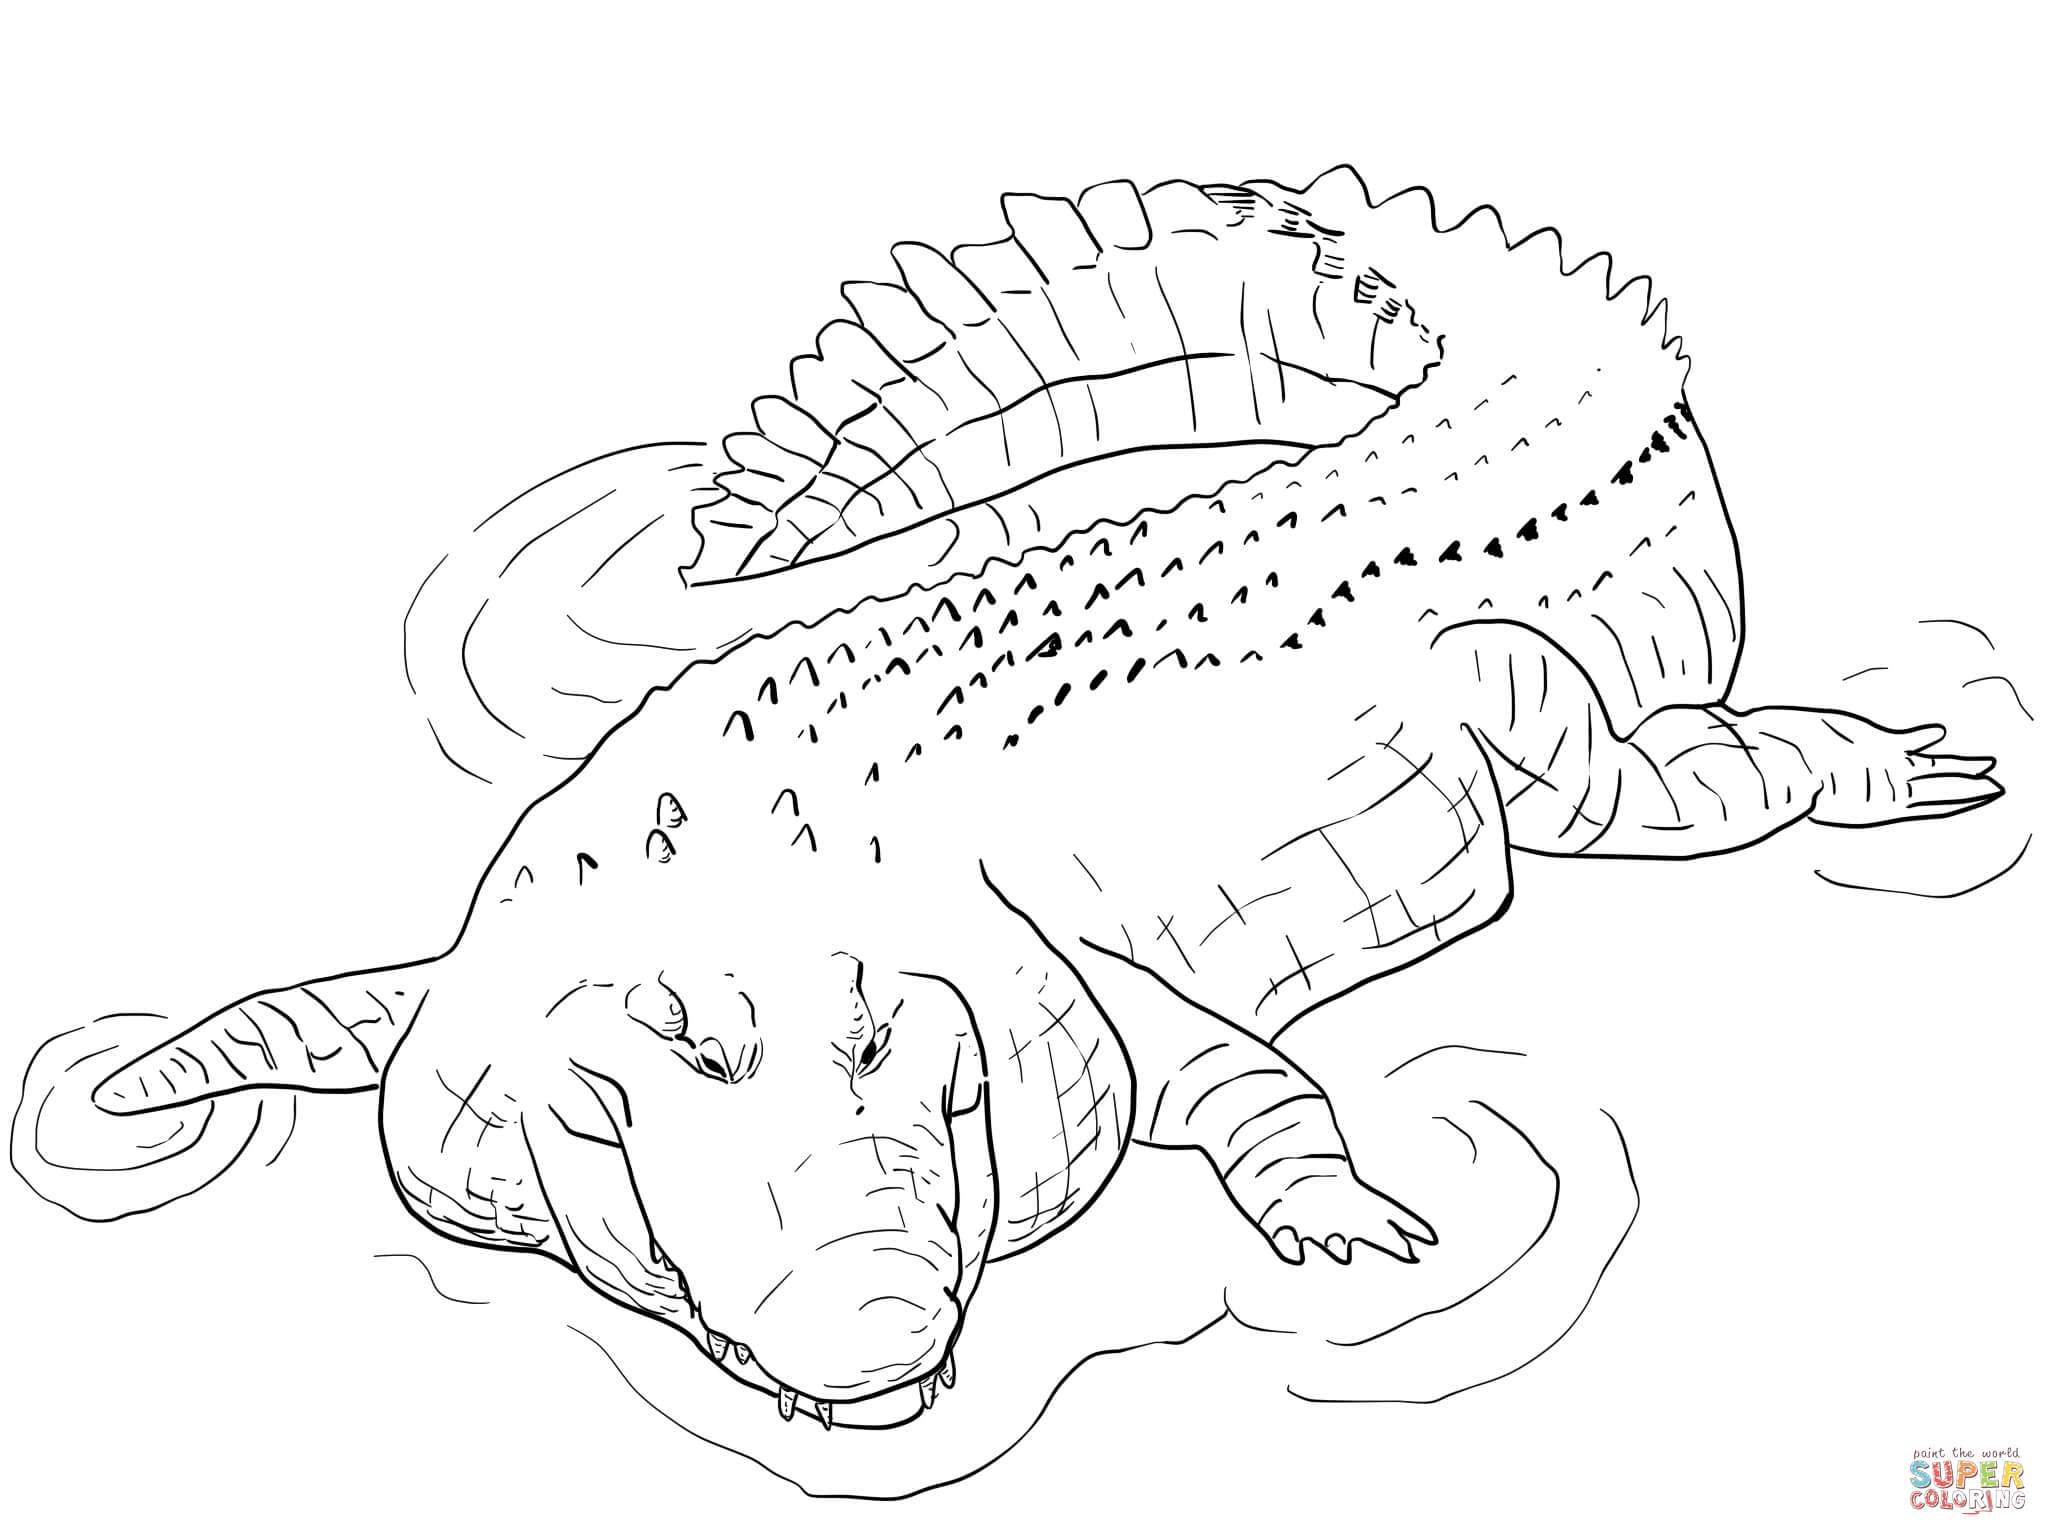 Crocodile coloring #11, Download drawings